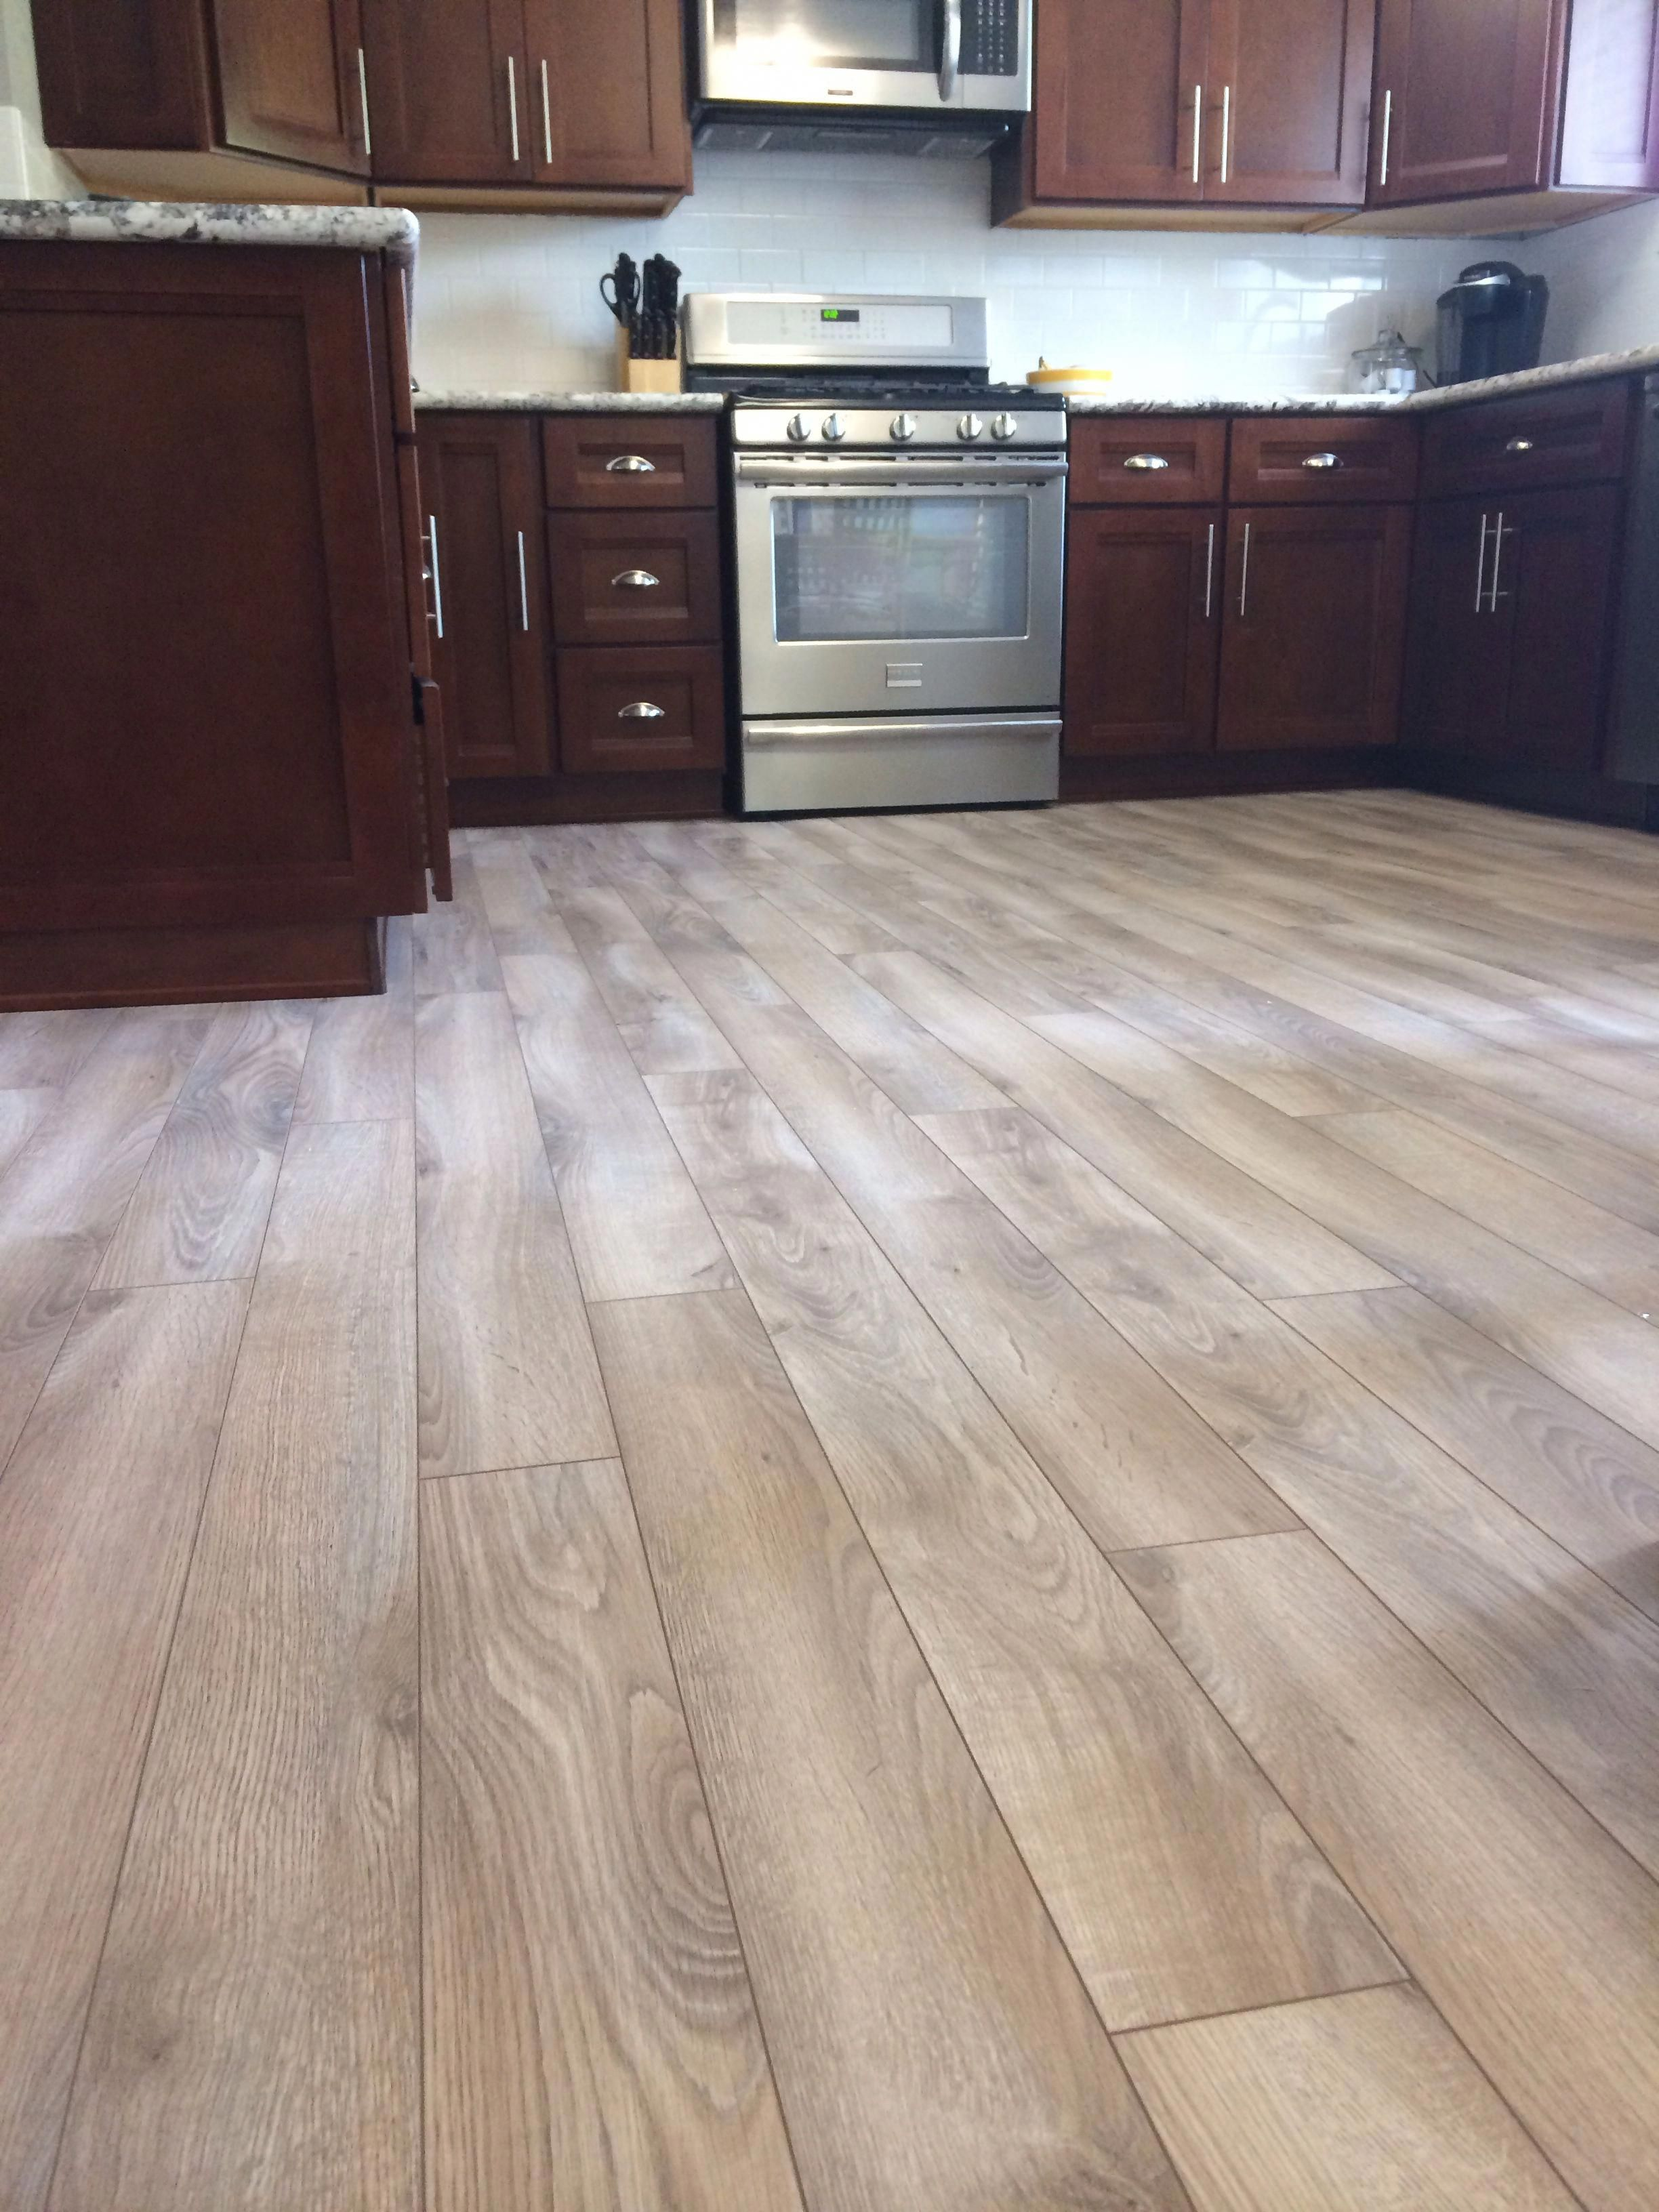 Cherry Wood Cabinets With Features Like Detailed Door Profiles And Beautiful Ornamentation W Cherry Cabinets Kitchen Cherry Wood Cabinets Cherry Wood Kitchens